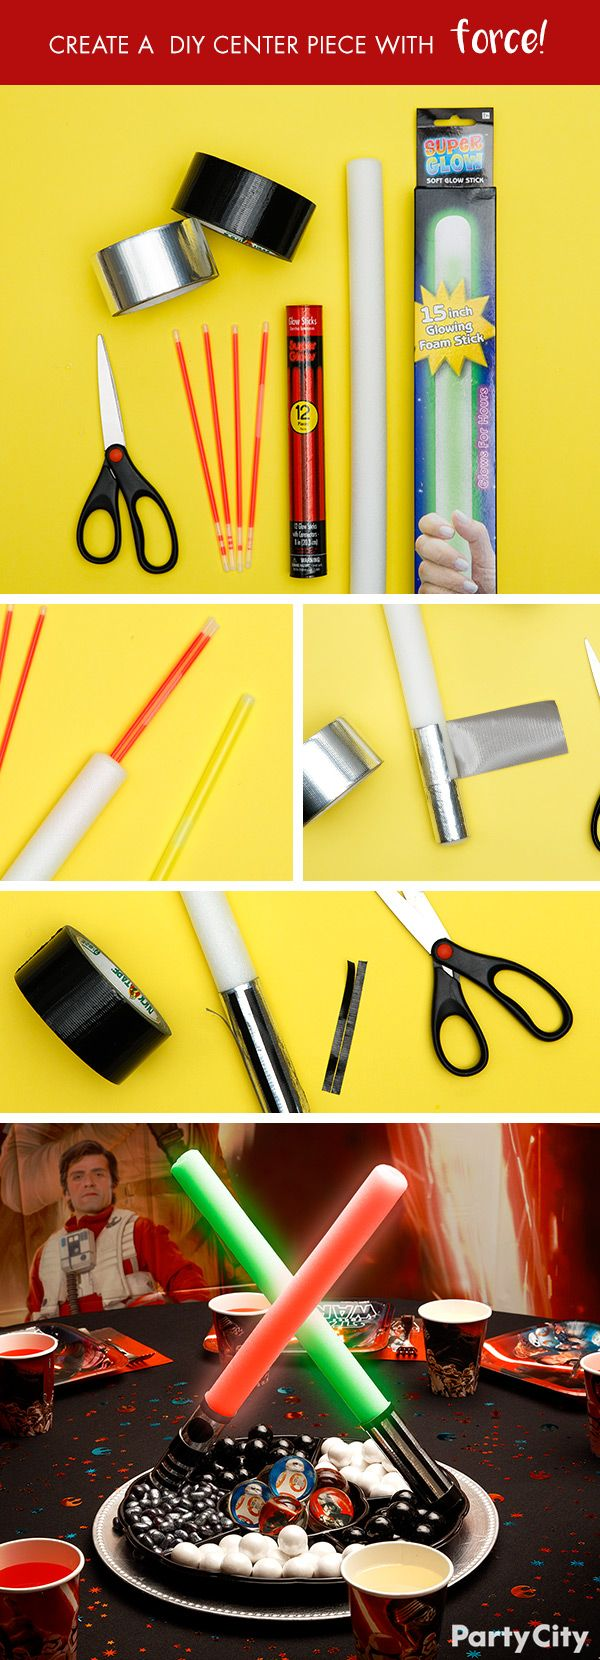 Jedi or Sith, you can create a centerpiece with force for any Star Wars Party! First, place glow sticks inside LED foam light sticks. Create the light saber handles with black and silver duct tape. Make them cross each other as though engaged in battle and attach to serving tray. Finally fill the tray with galactic candy of your choice! This IS the DIY you're looking for!